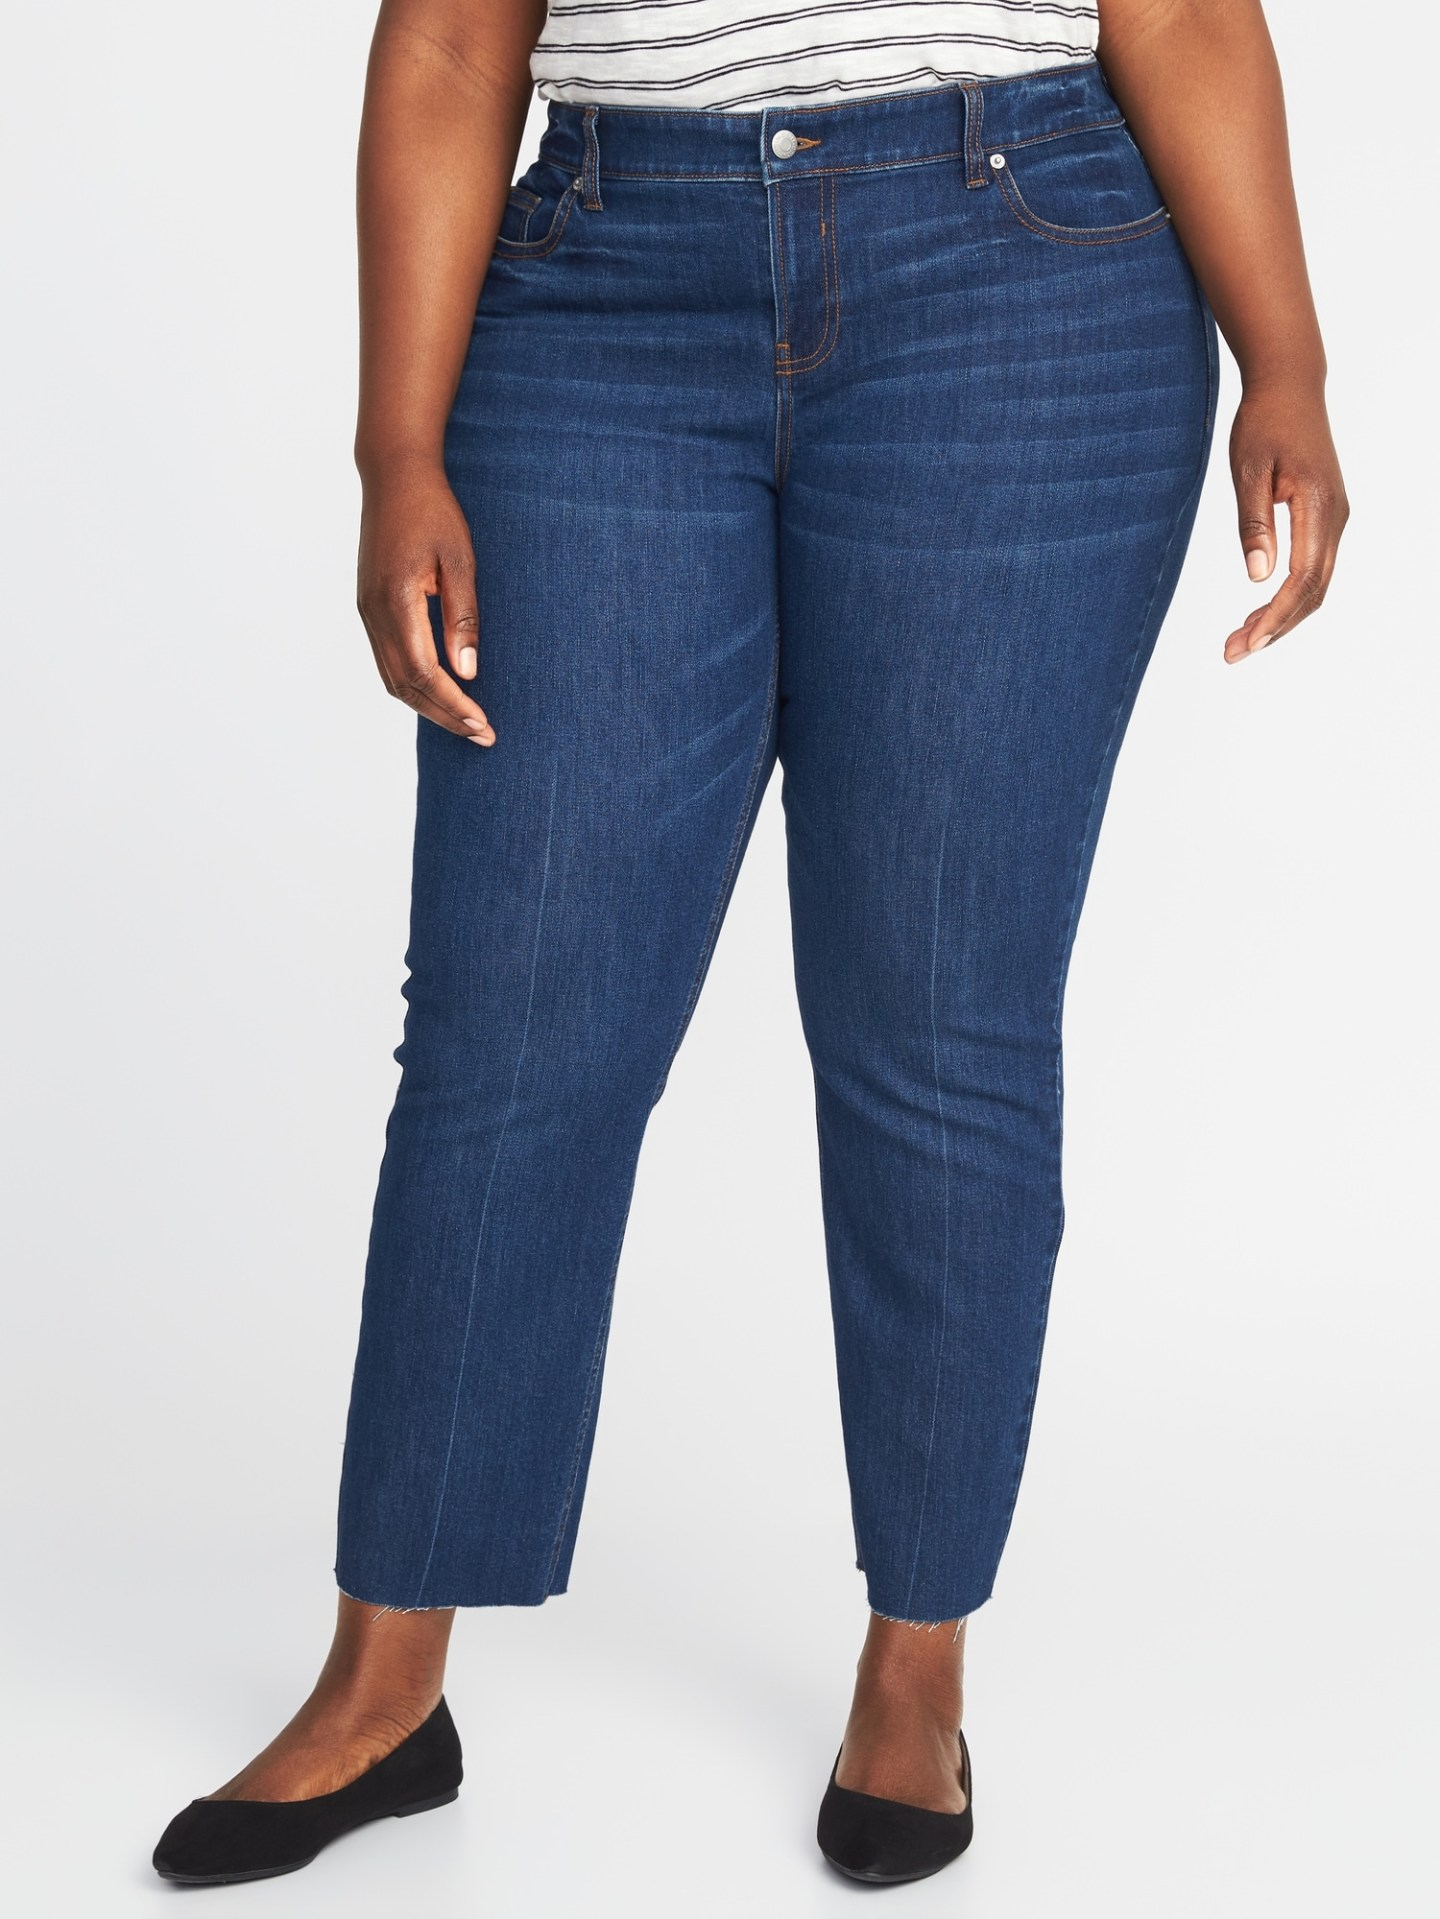 Old Navy Denim